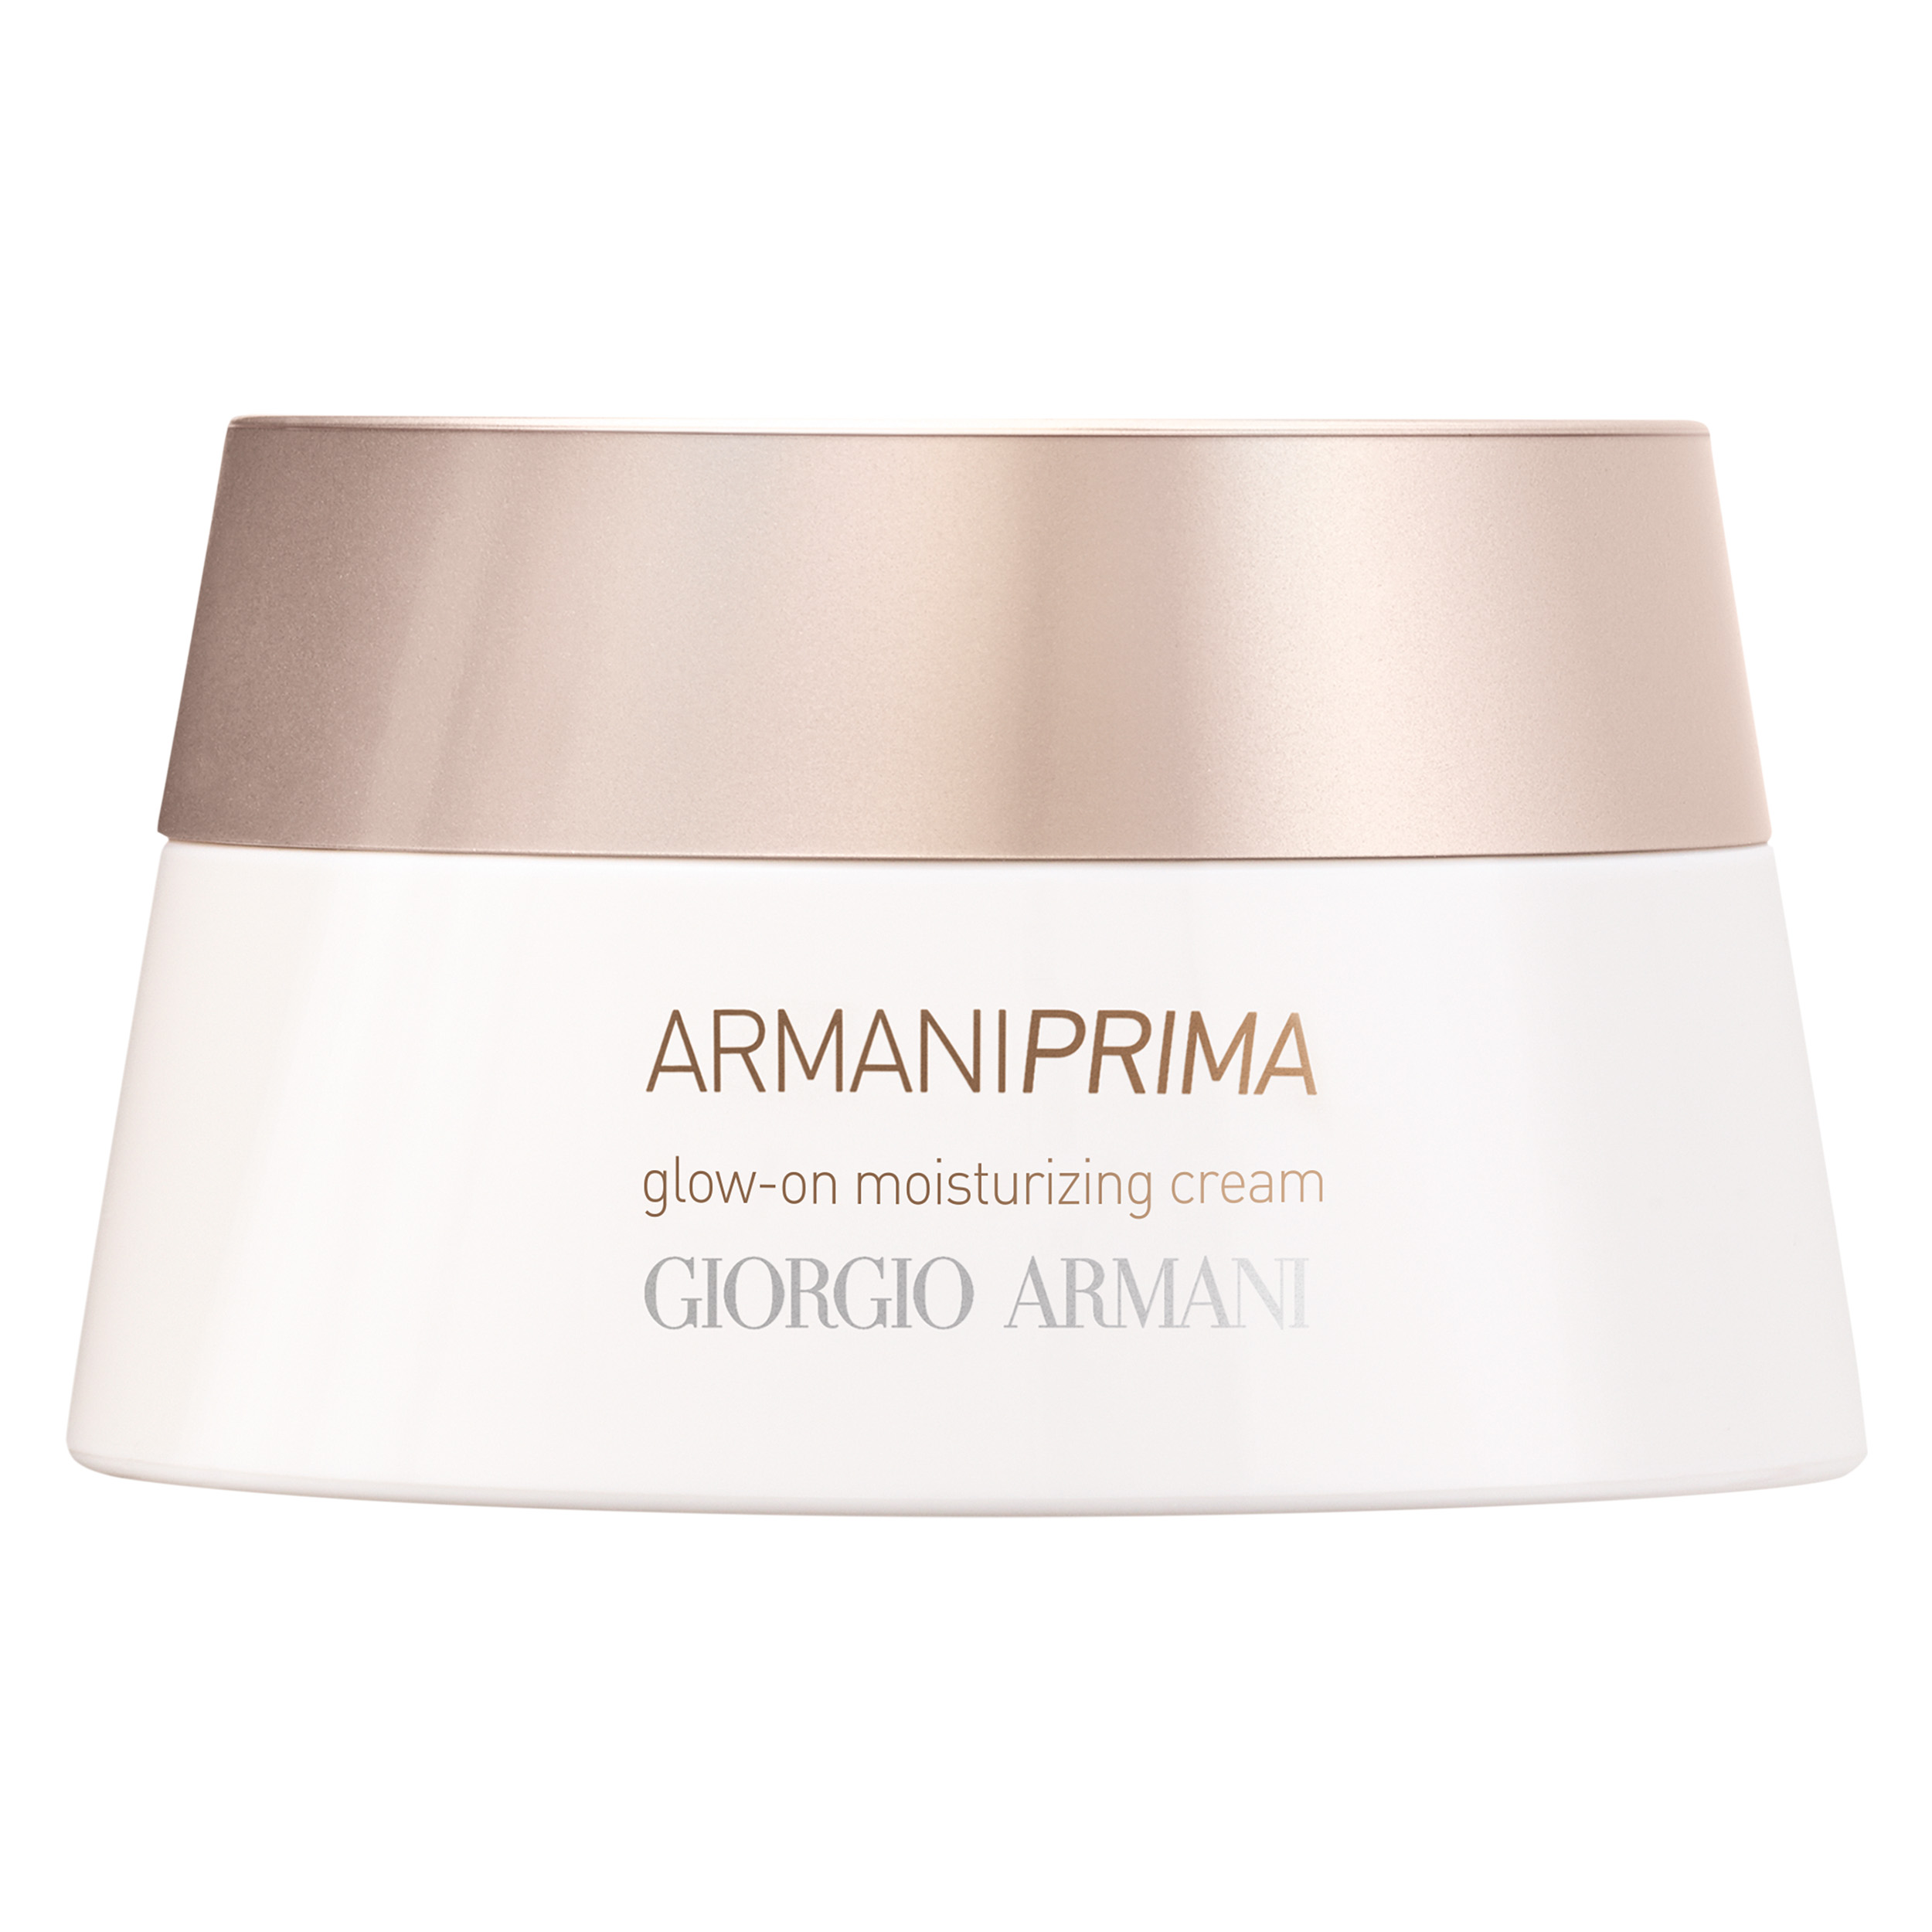 GAB_ArmaniPrima2019_Glow-On_Moisturizing_Cream